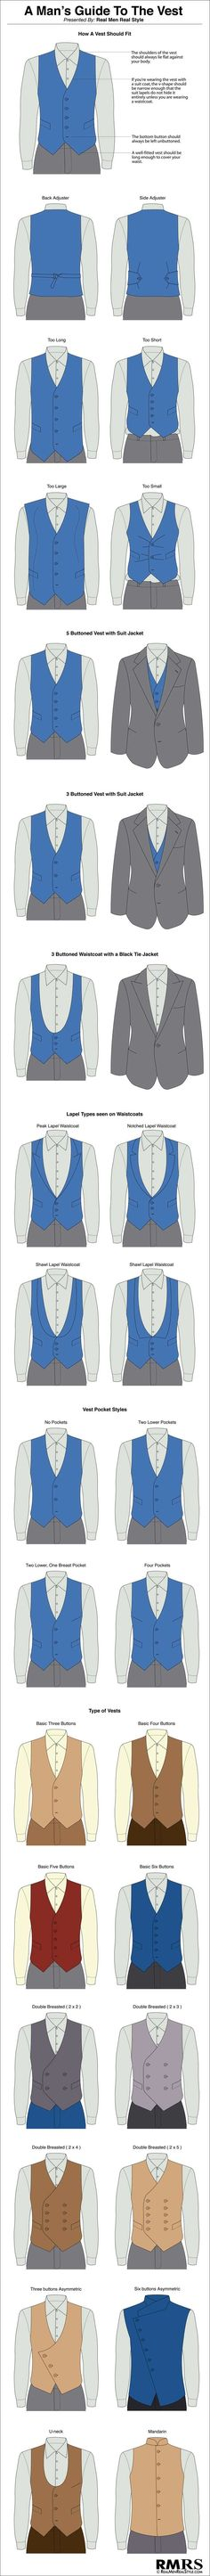 A Mans Guide To The Vest